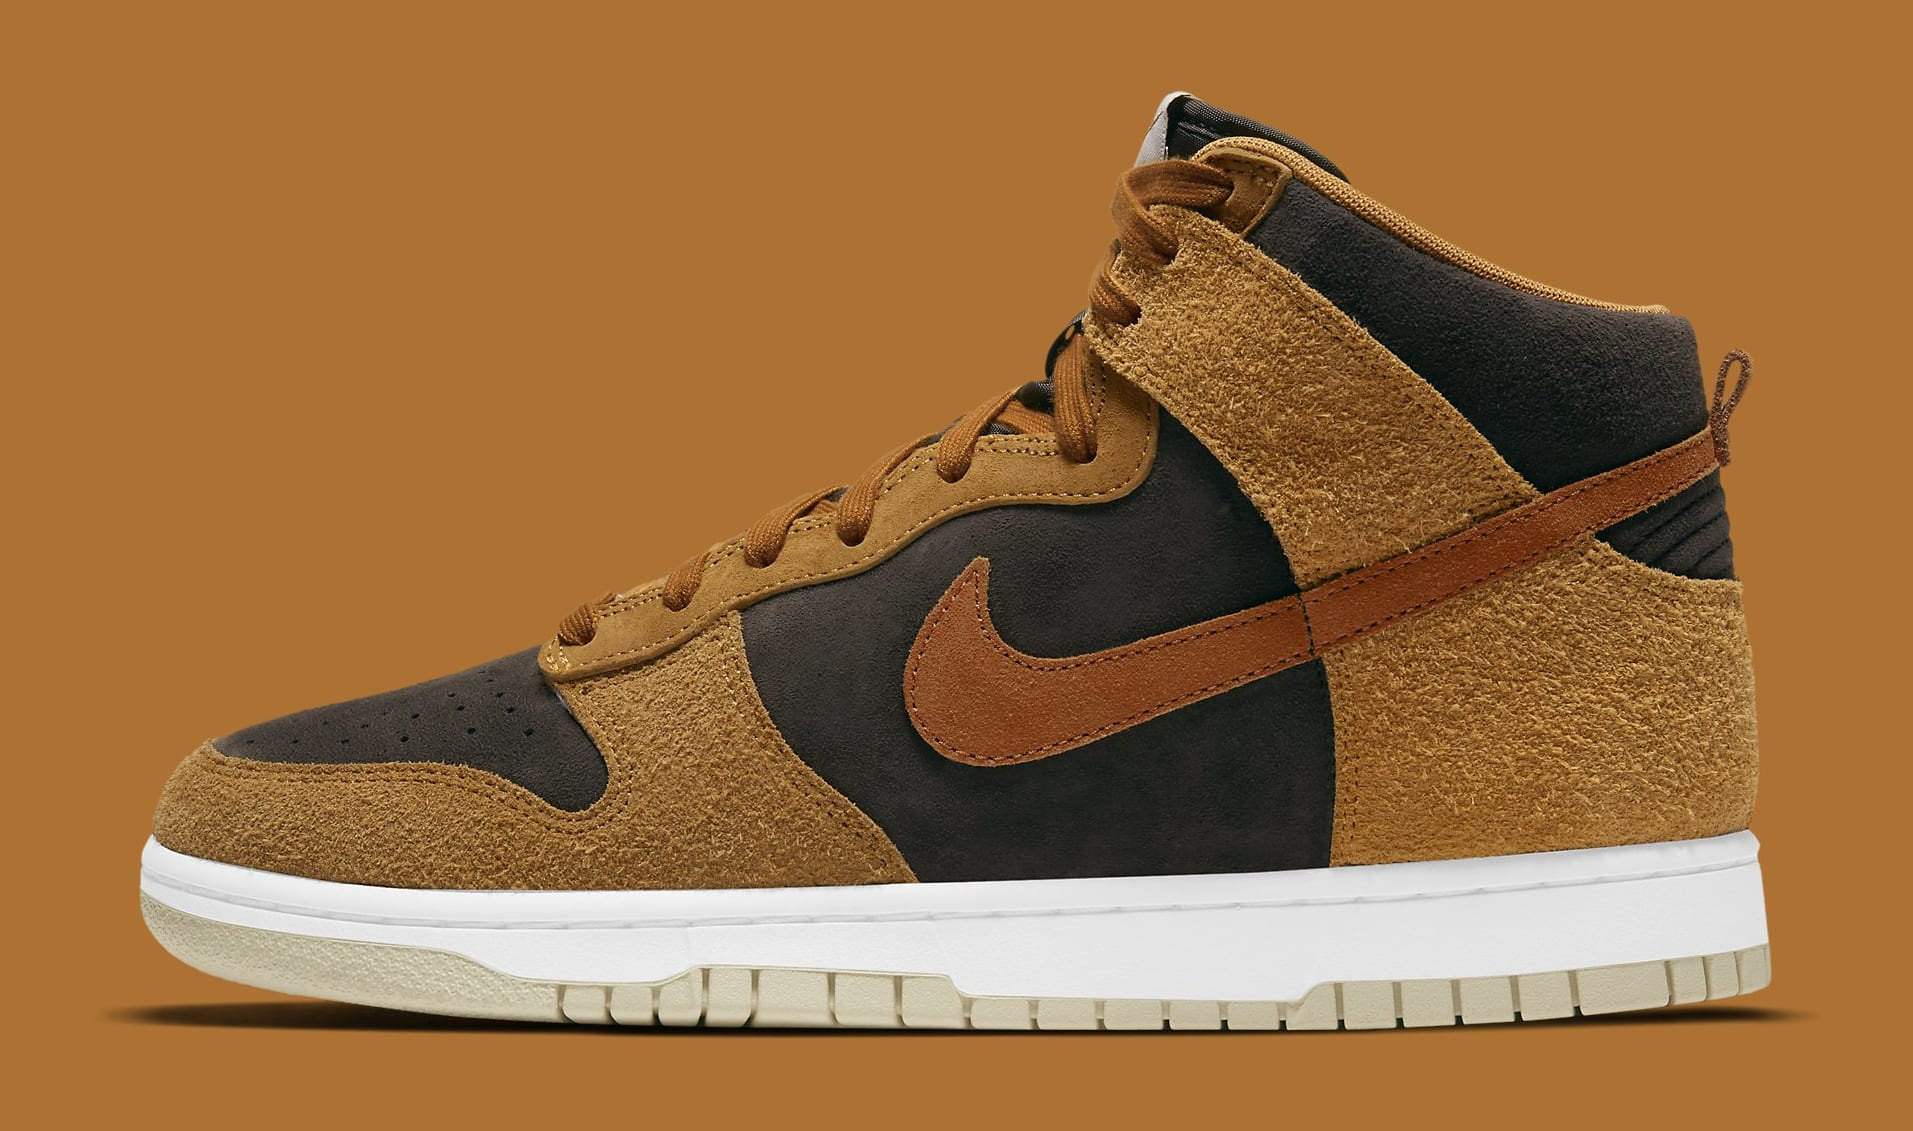 Nike Dunk High 'Dark Curry' DD1401-200 Lateral